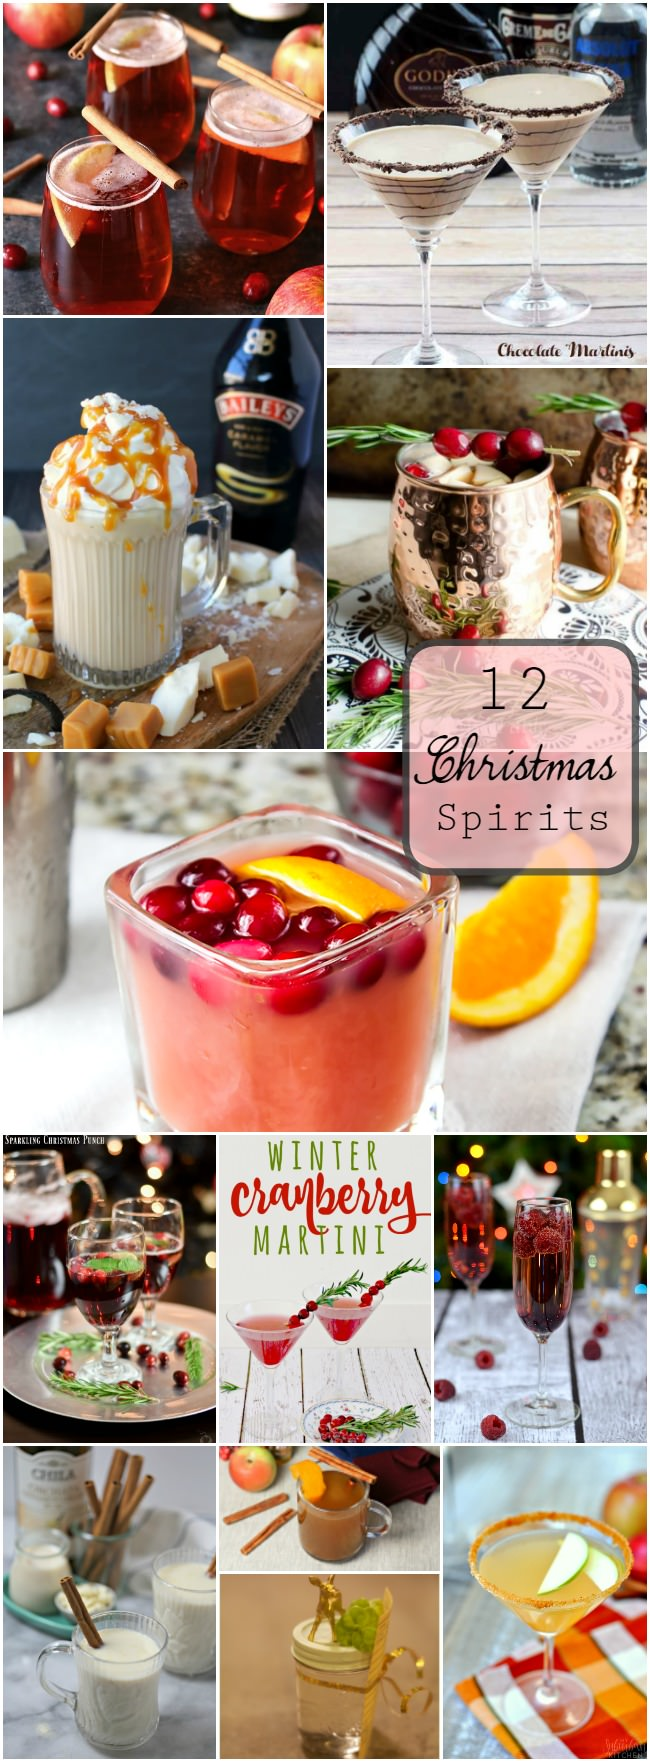 Enjoy these 12 Christmas Spirits this holiday! They are sure to get you and your company in the jolliest of moods!